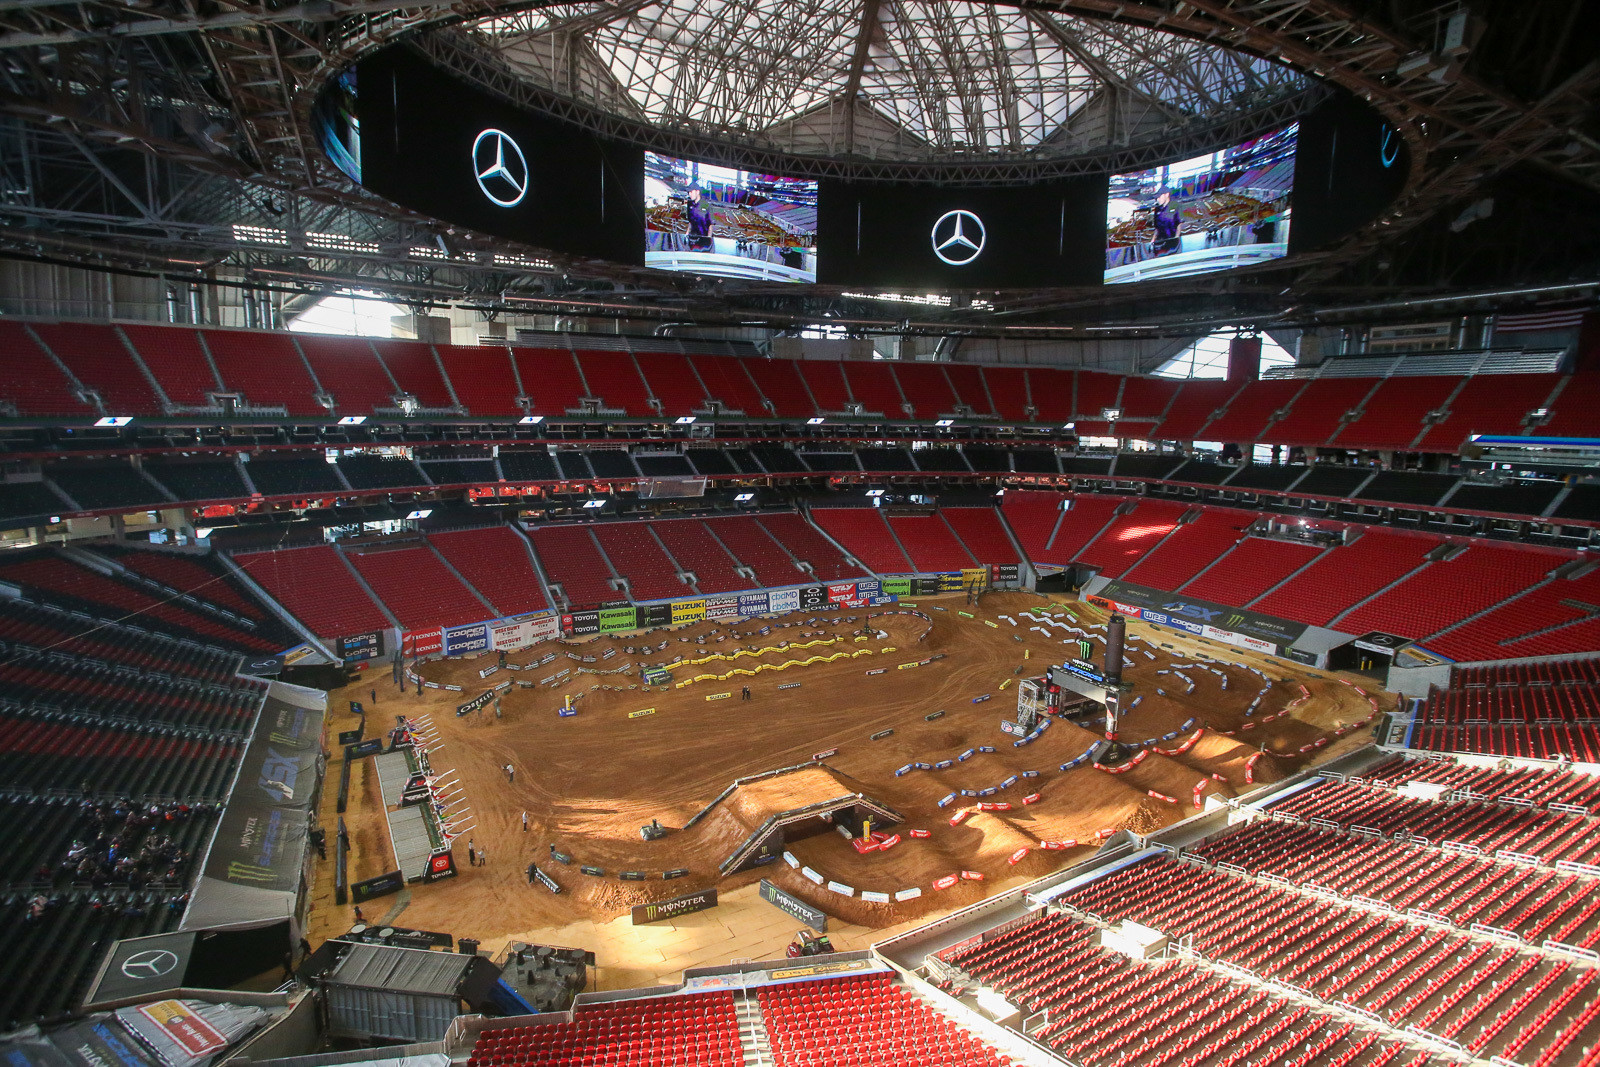 The stadium is a tough act to follow, but Mercedes-Benz Stadium in Atlanta is pretty cool in its own right.